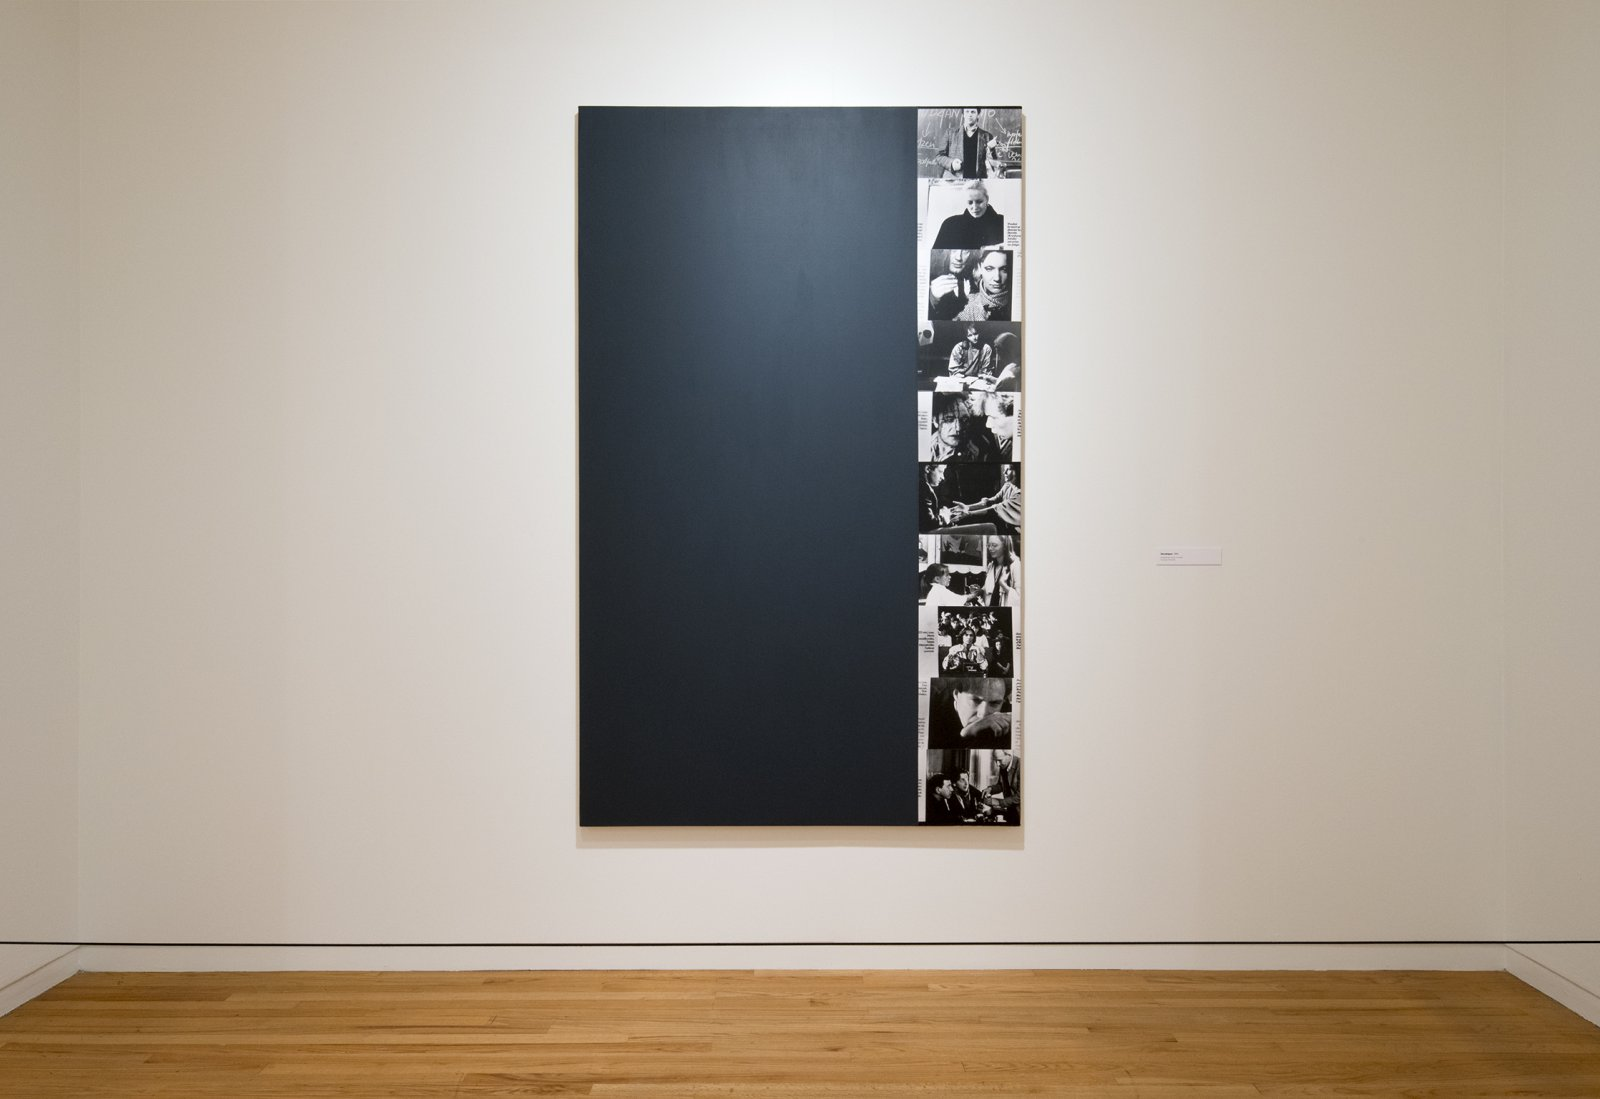 Ian Wallace, Decollage, 1990, photolaminate, acrylic on canvas, 80 x 48 in. (204 x 122 cm). Installation view, A Literature of Images, Vancouver Art Gallery, 2012 by Ian Wallace